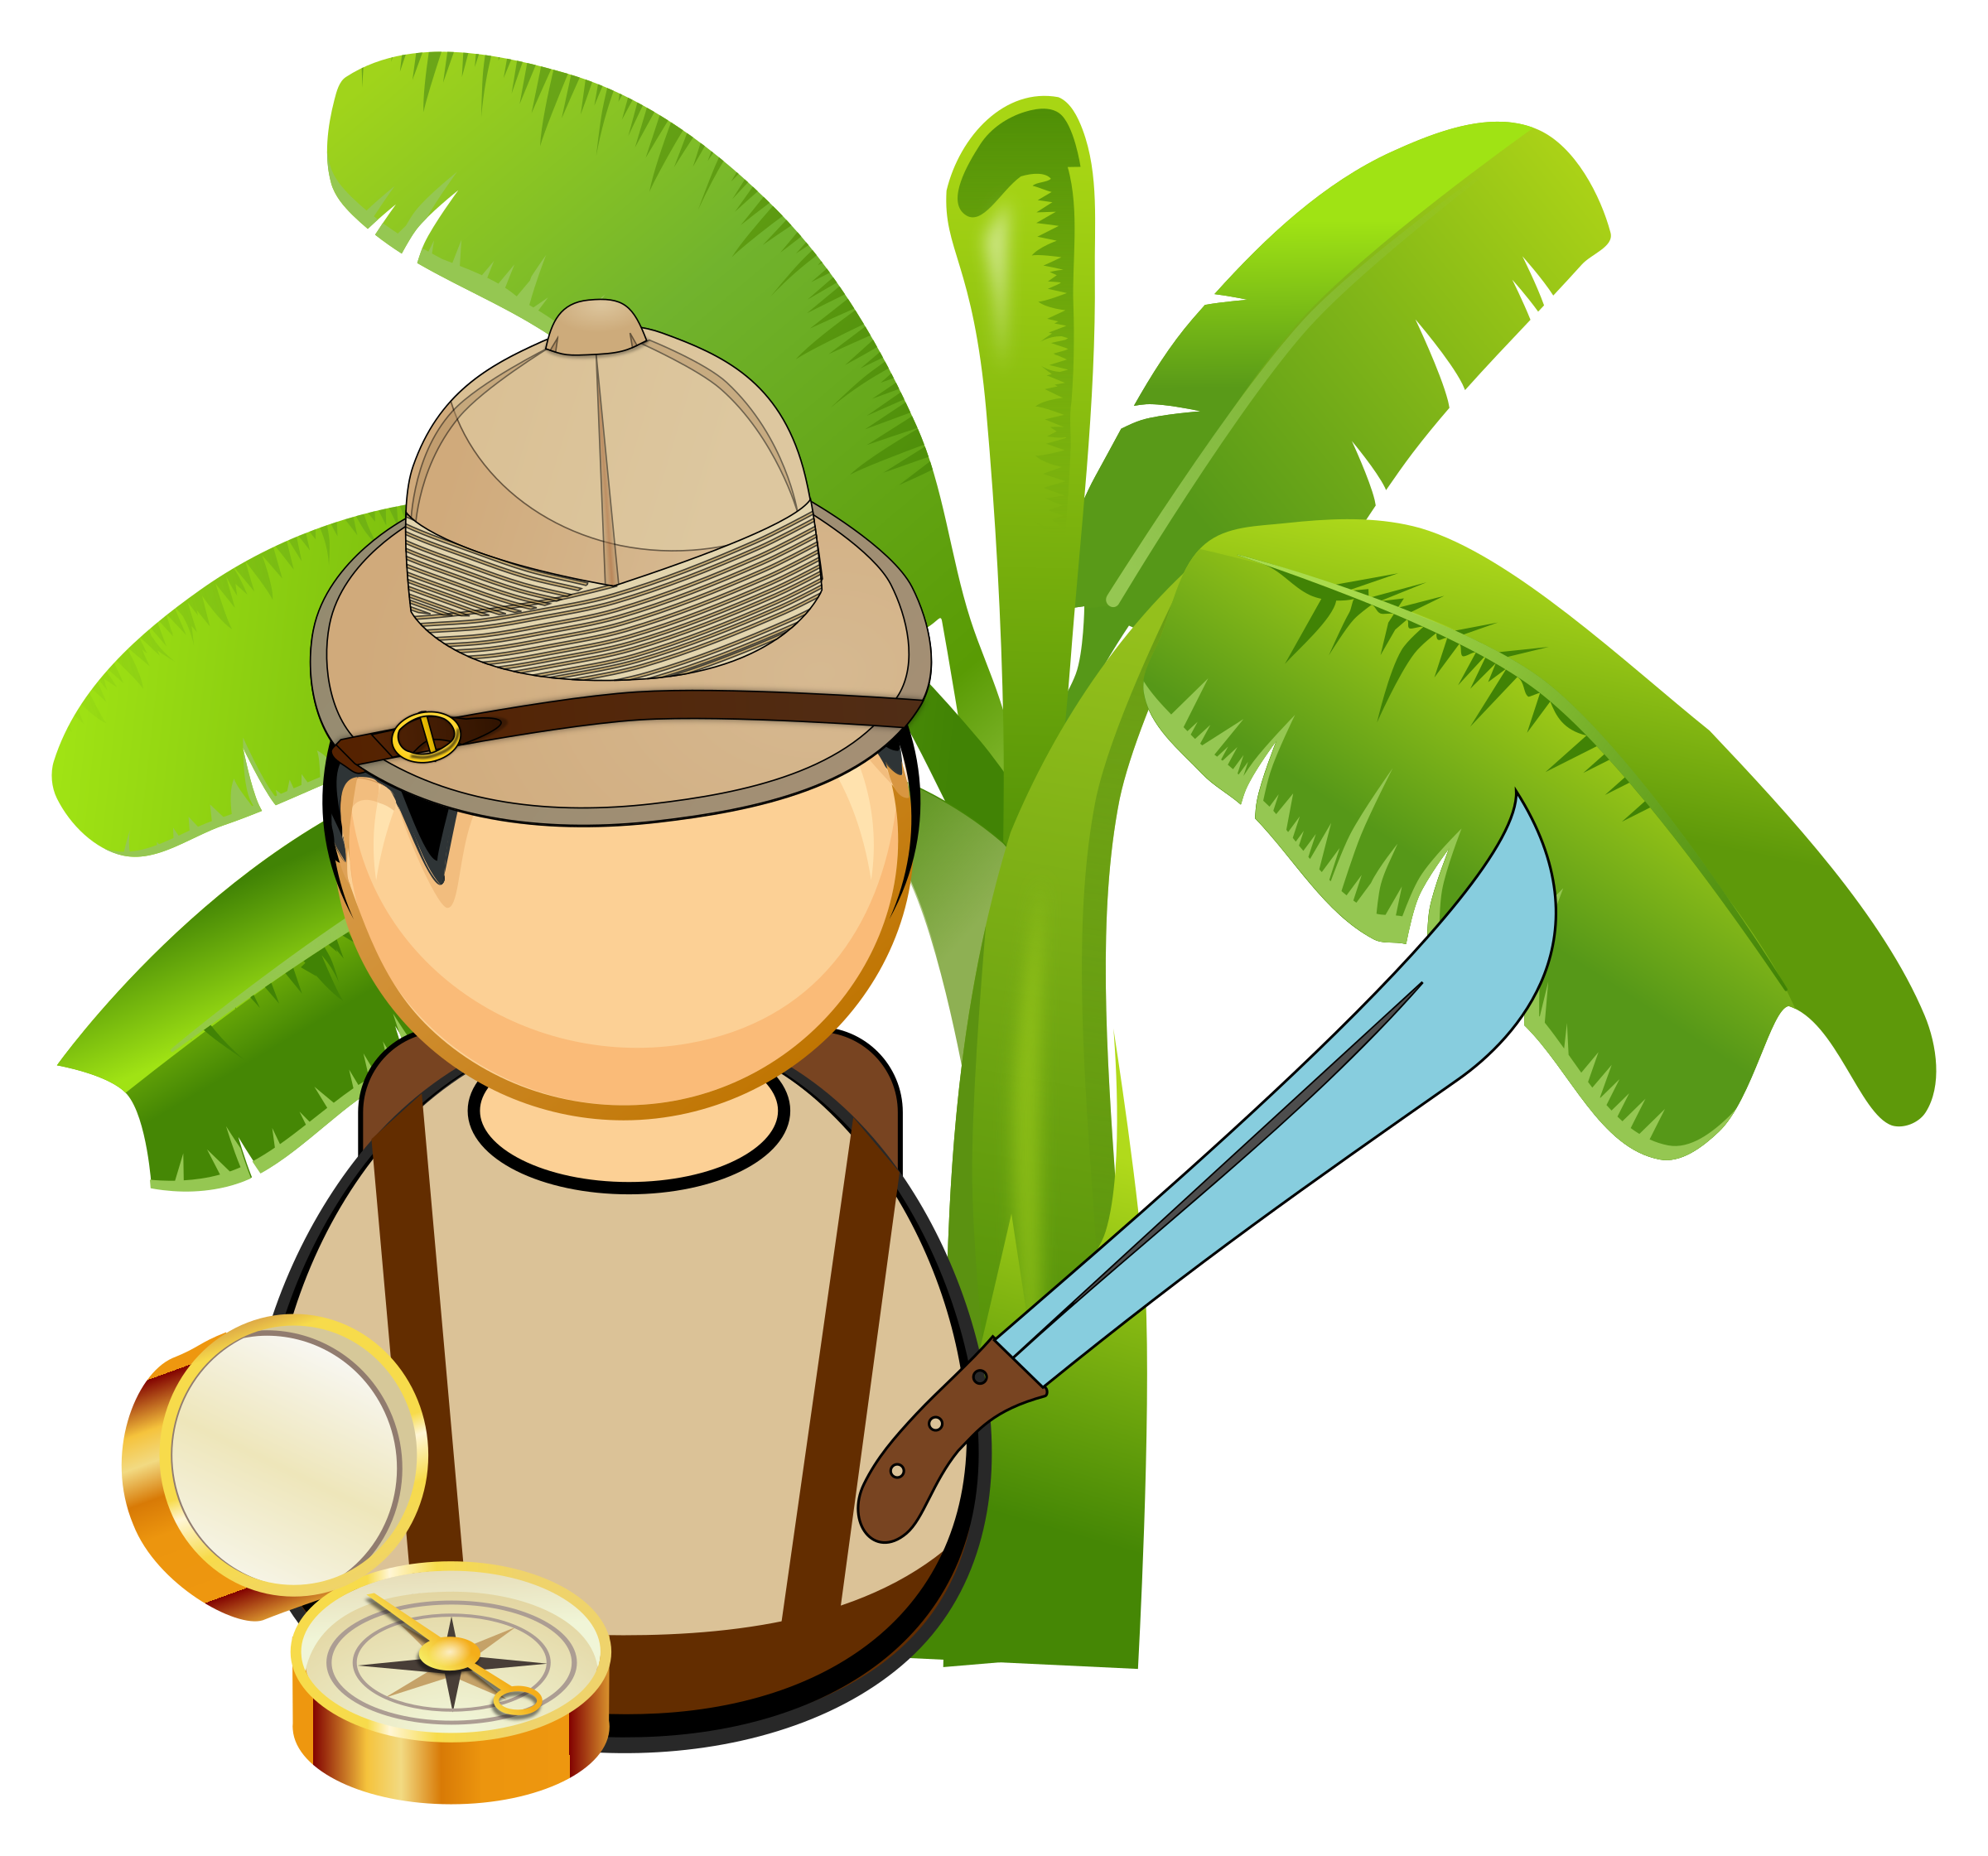 Adventurer drawing explorer. Jungle icons png free